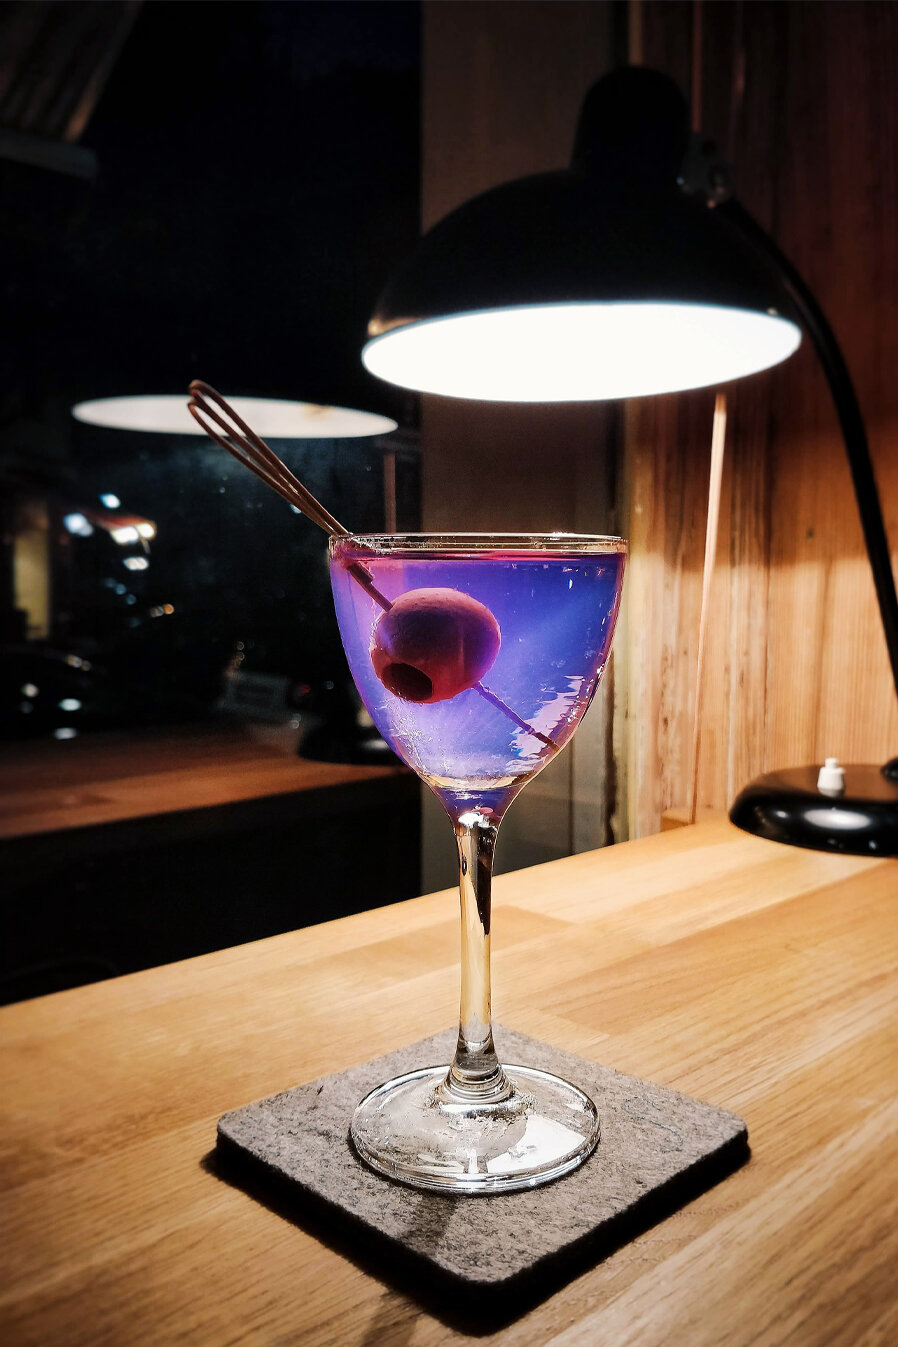 Blue Martini - Fabelei Bar meets Illusionist Dry Gin in a perfect marriage of creativity and attention to detail.6cl Illusionist Gin 2cl Dolin Dry Vermouth 1cl Cocchi Americano 1 Dash of Celery BittersGarnish - Olive on a skewer